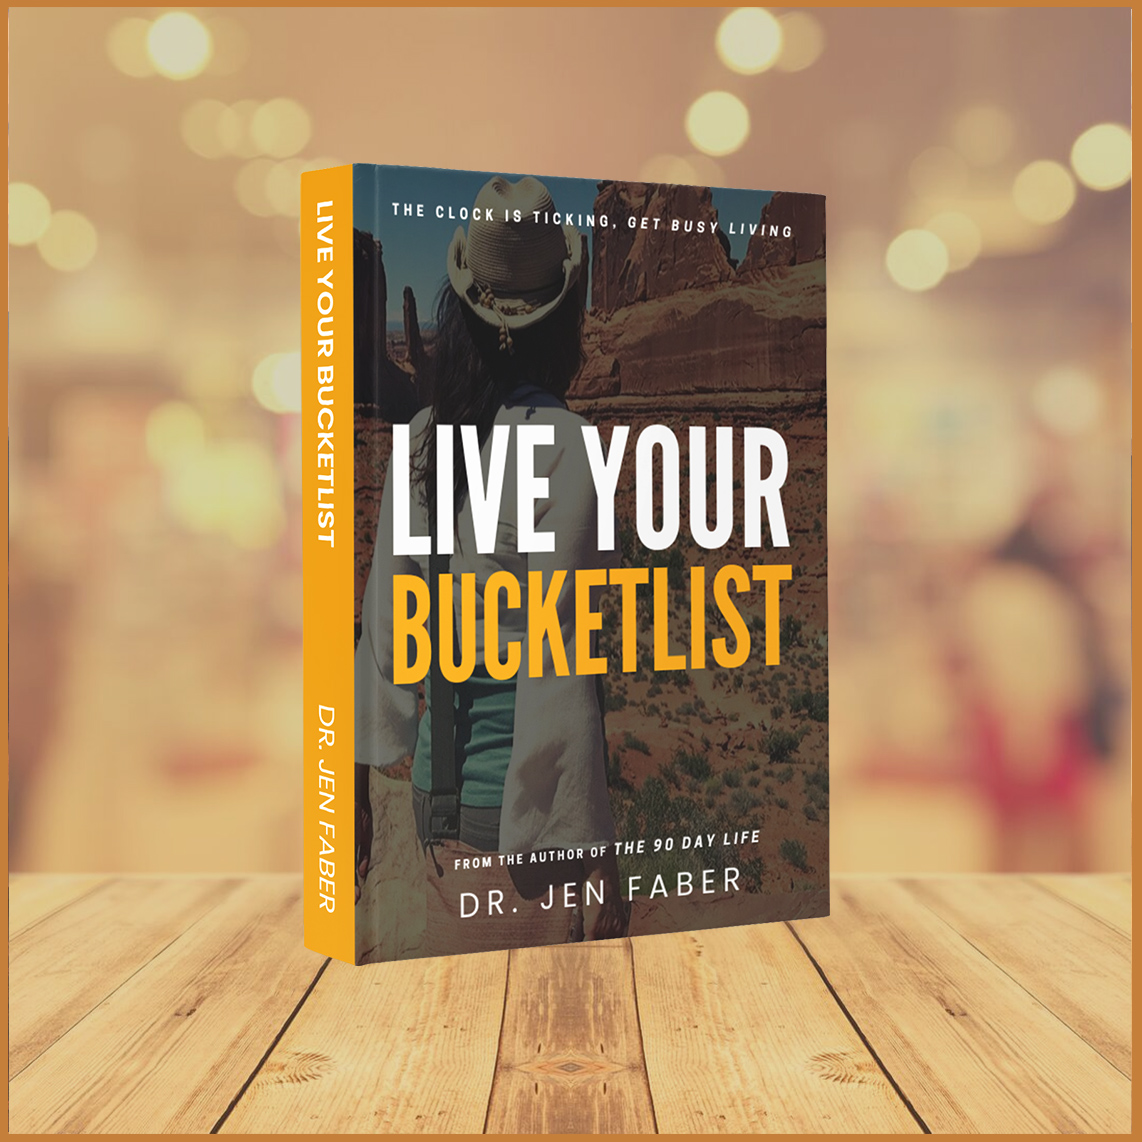 Live Your Bucketlist - Mockup - Shop